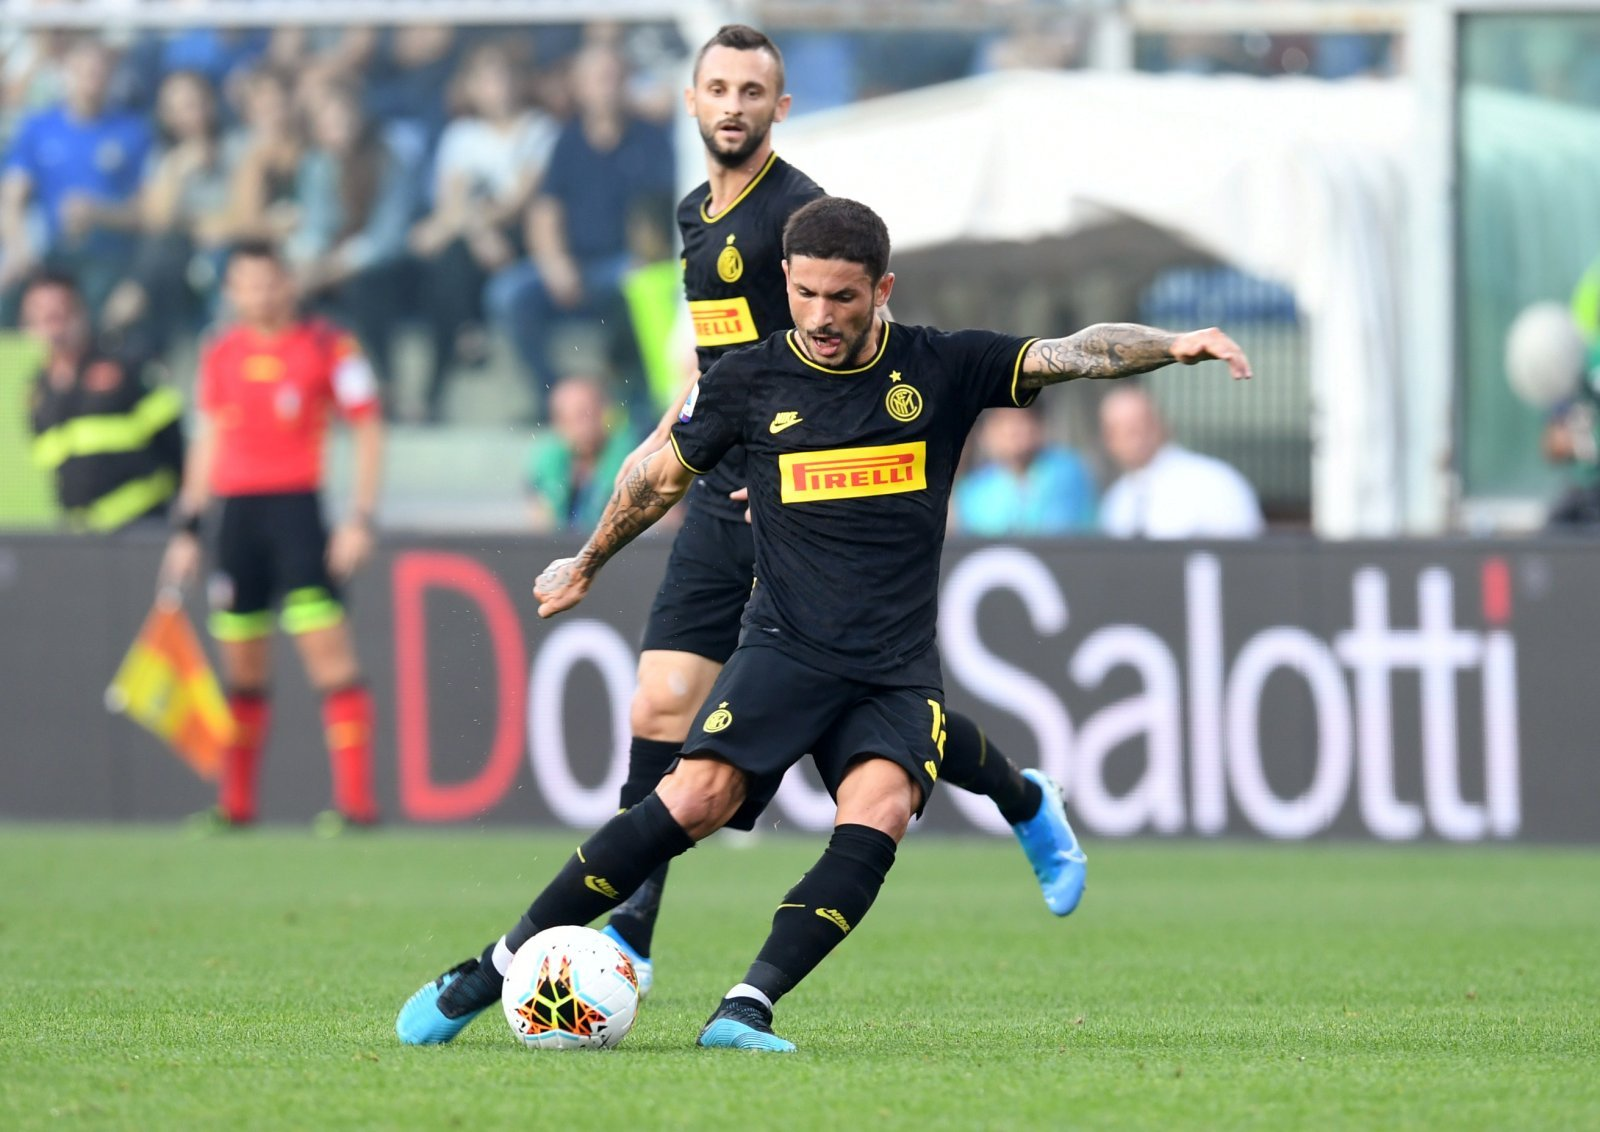 Internazionale: Stefano Sensi could make his return from injury against Bologna